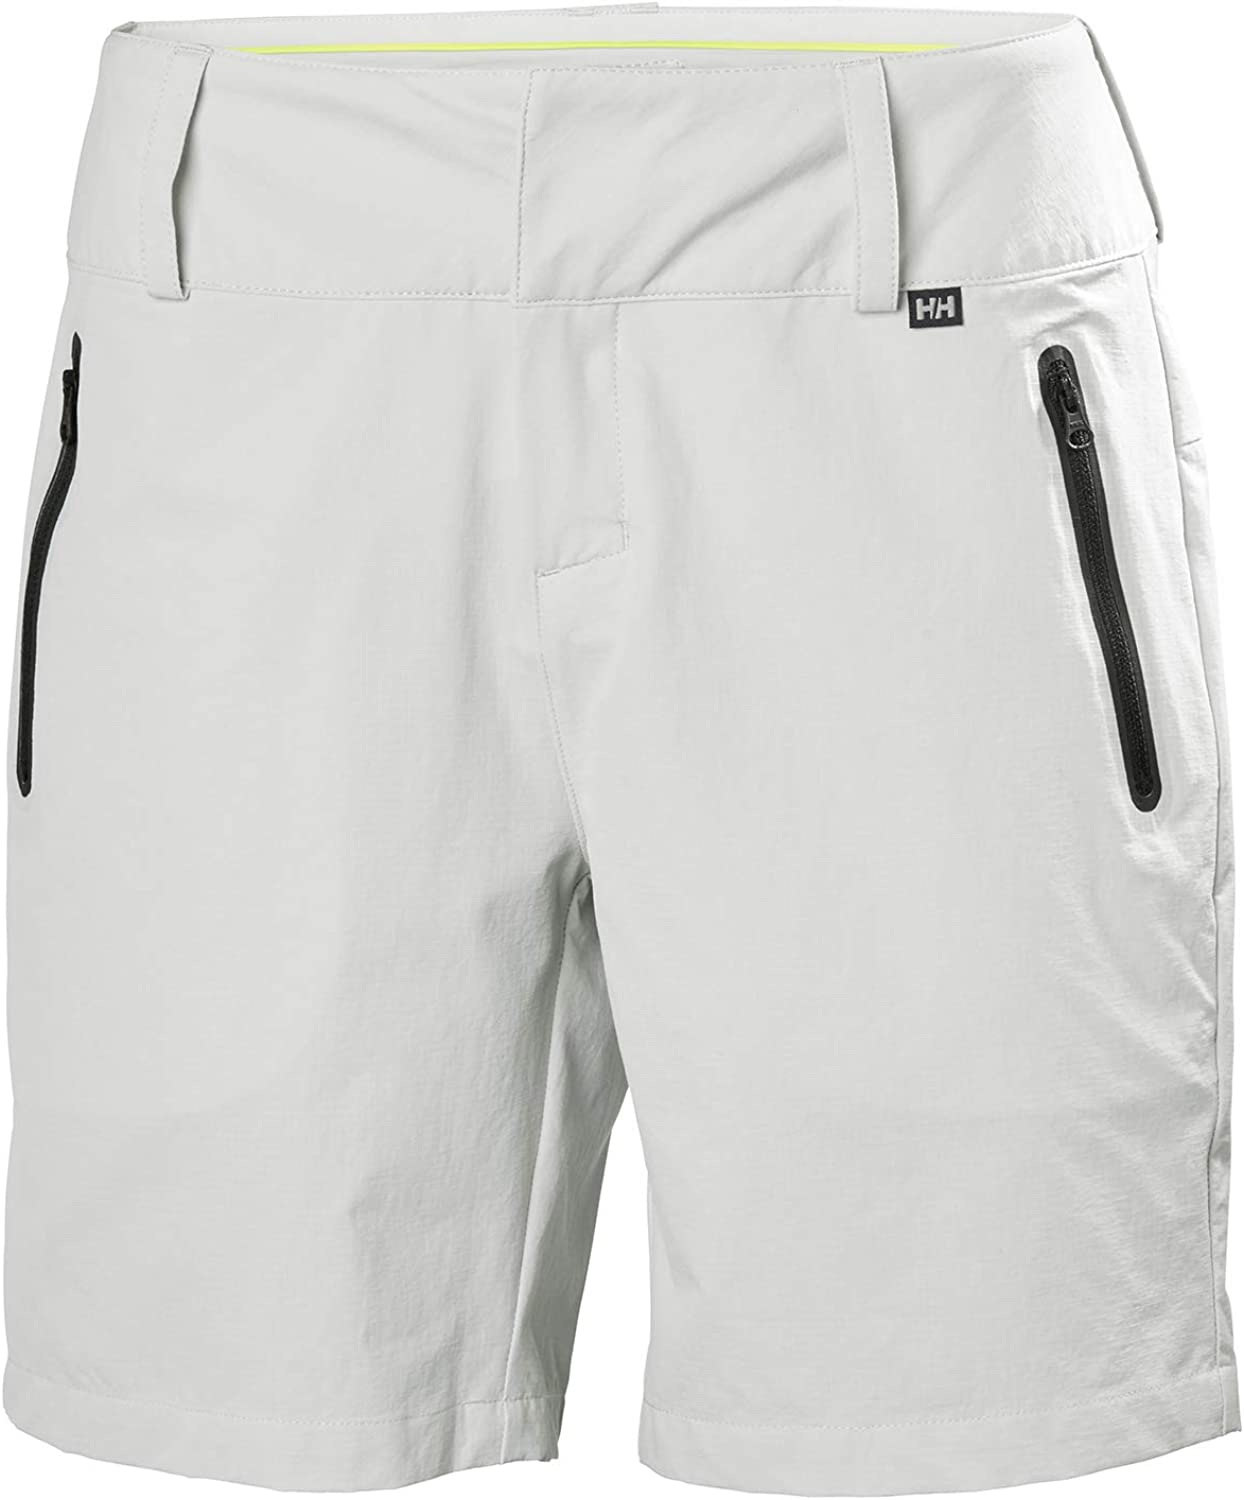 Helly Hansen Crewline Short Quickdry, Stretch and Sun Protection Shorts